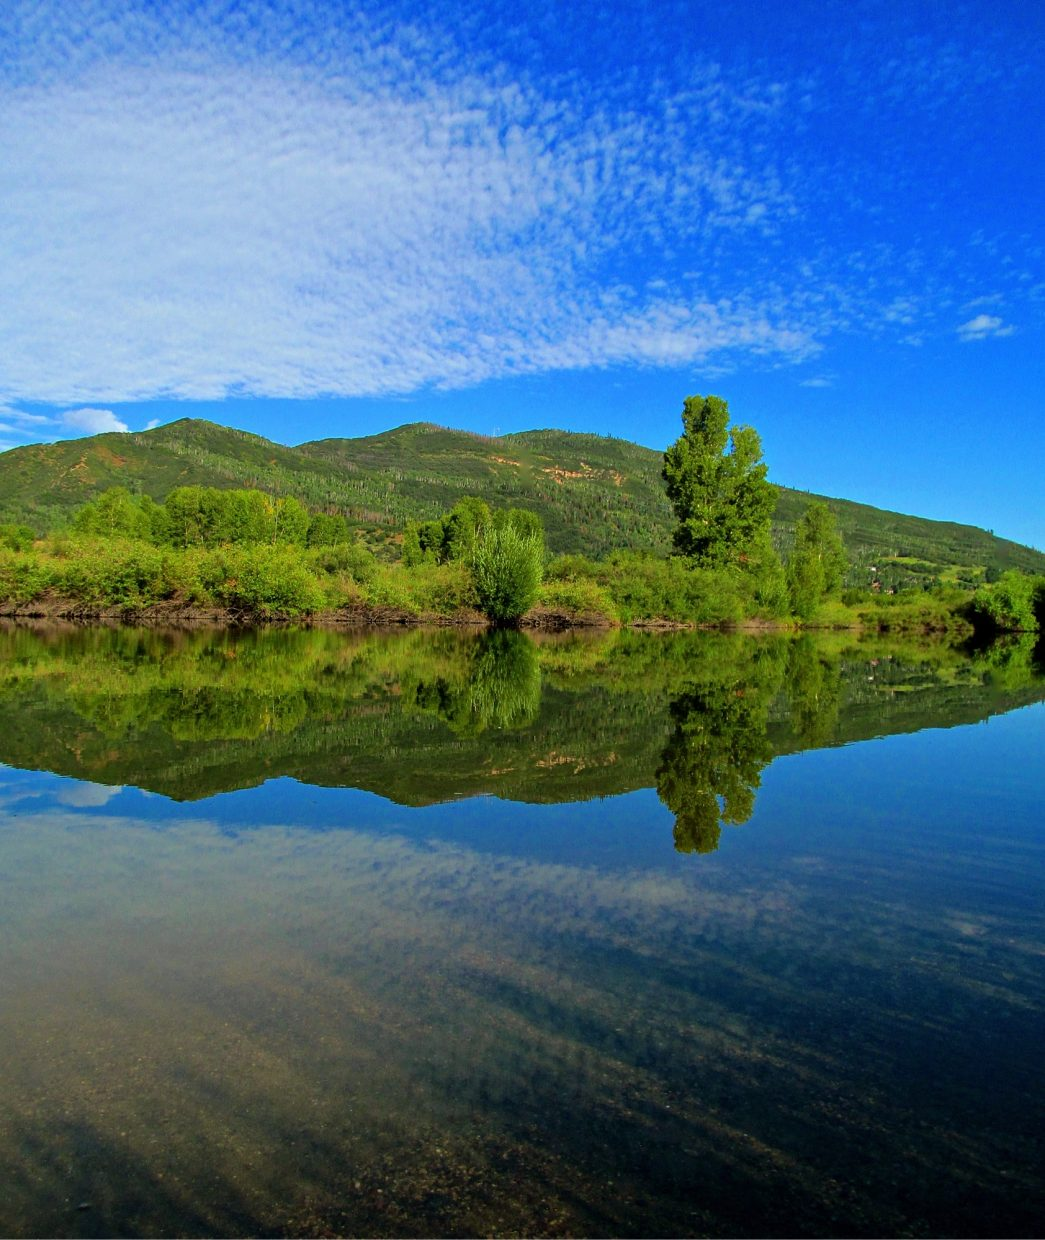 Morning reflections. Submitted by: Ryan Lohan